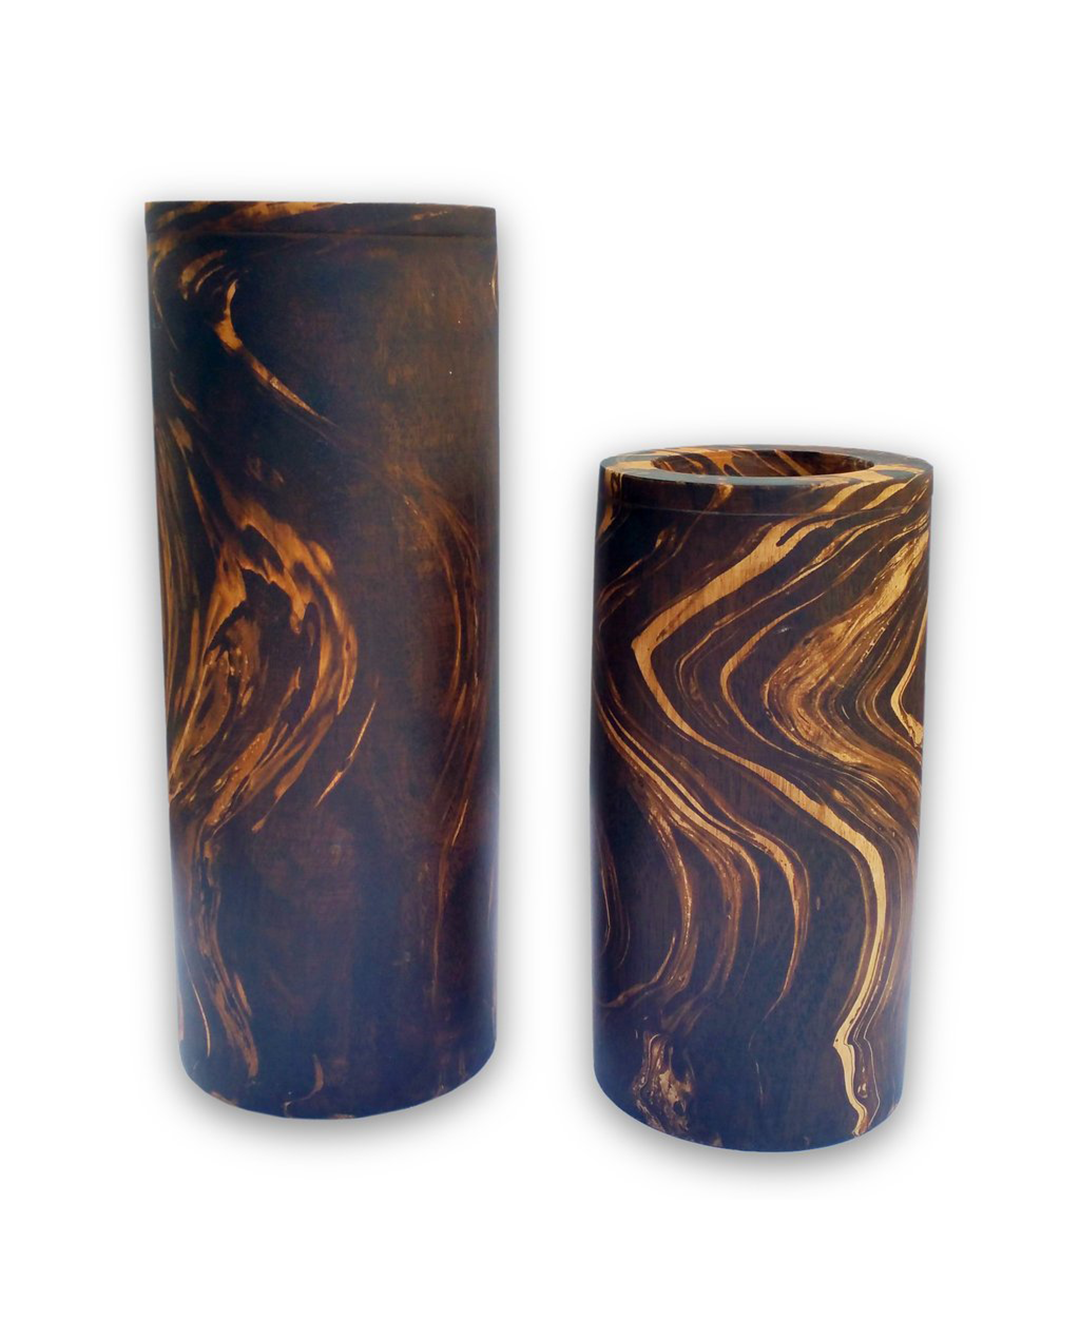 160391	Elle Black Marbled Candle Holder -LARGE